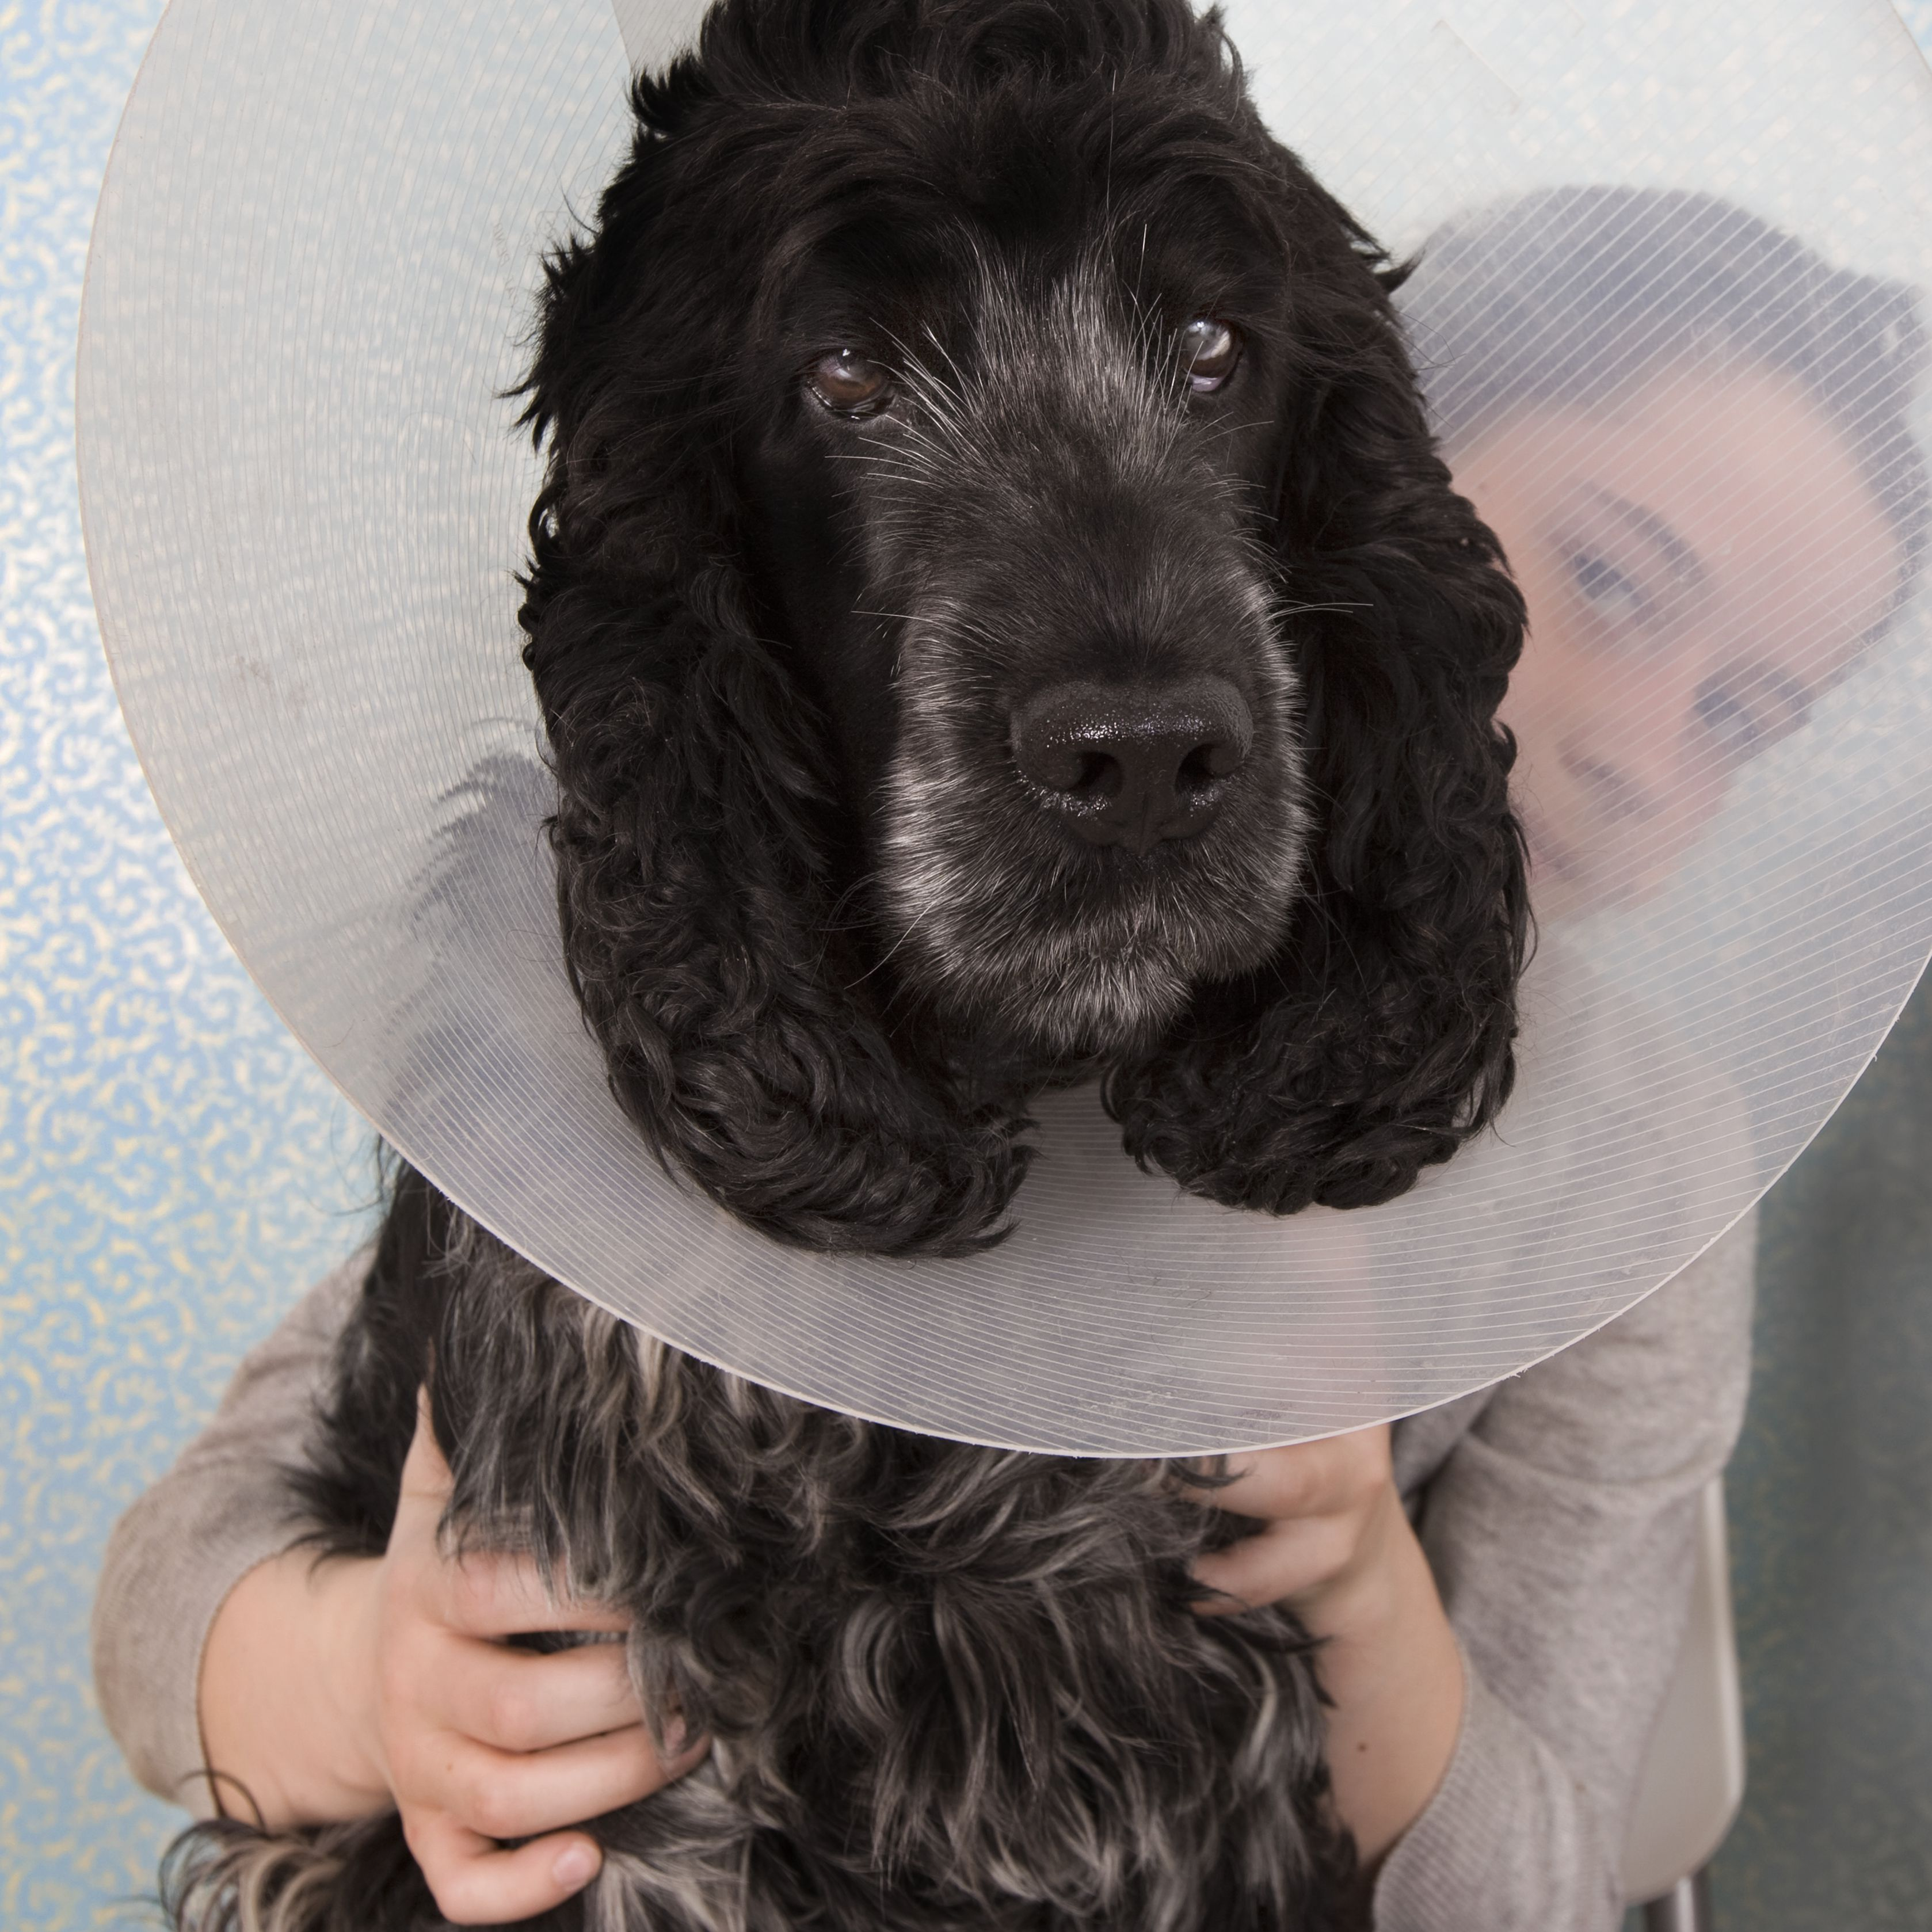 A dog with a medical collar